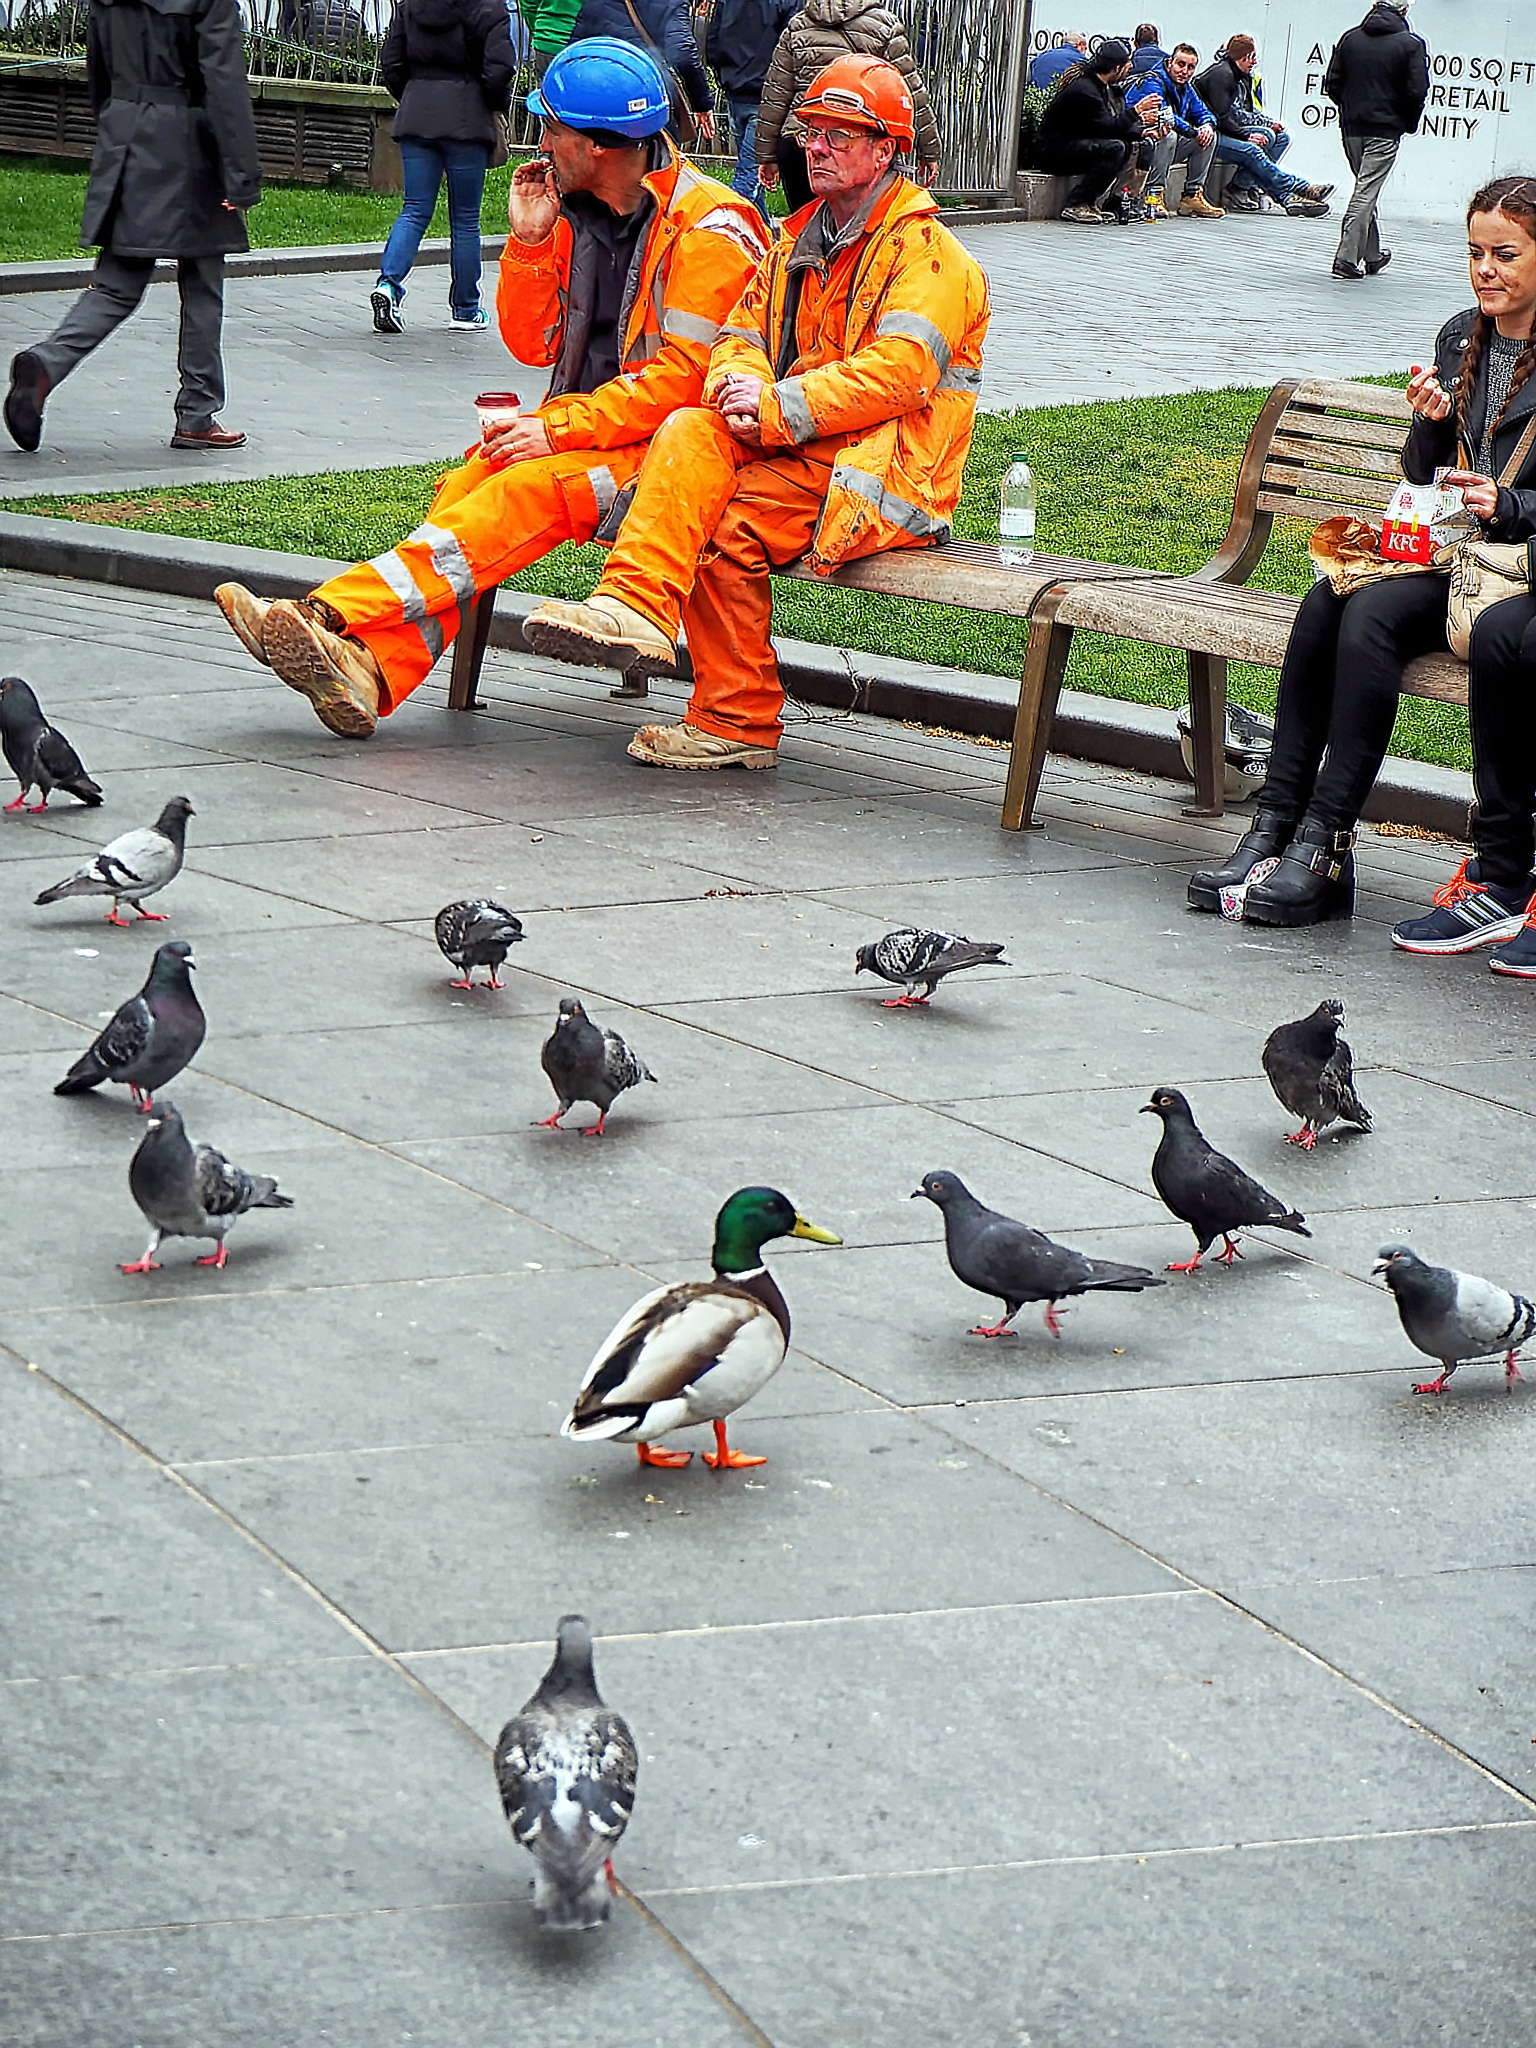 An unusual tourist in Leicester Square by Mike Roberts